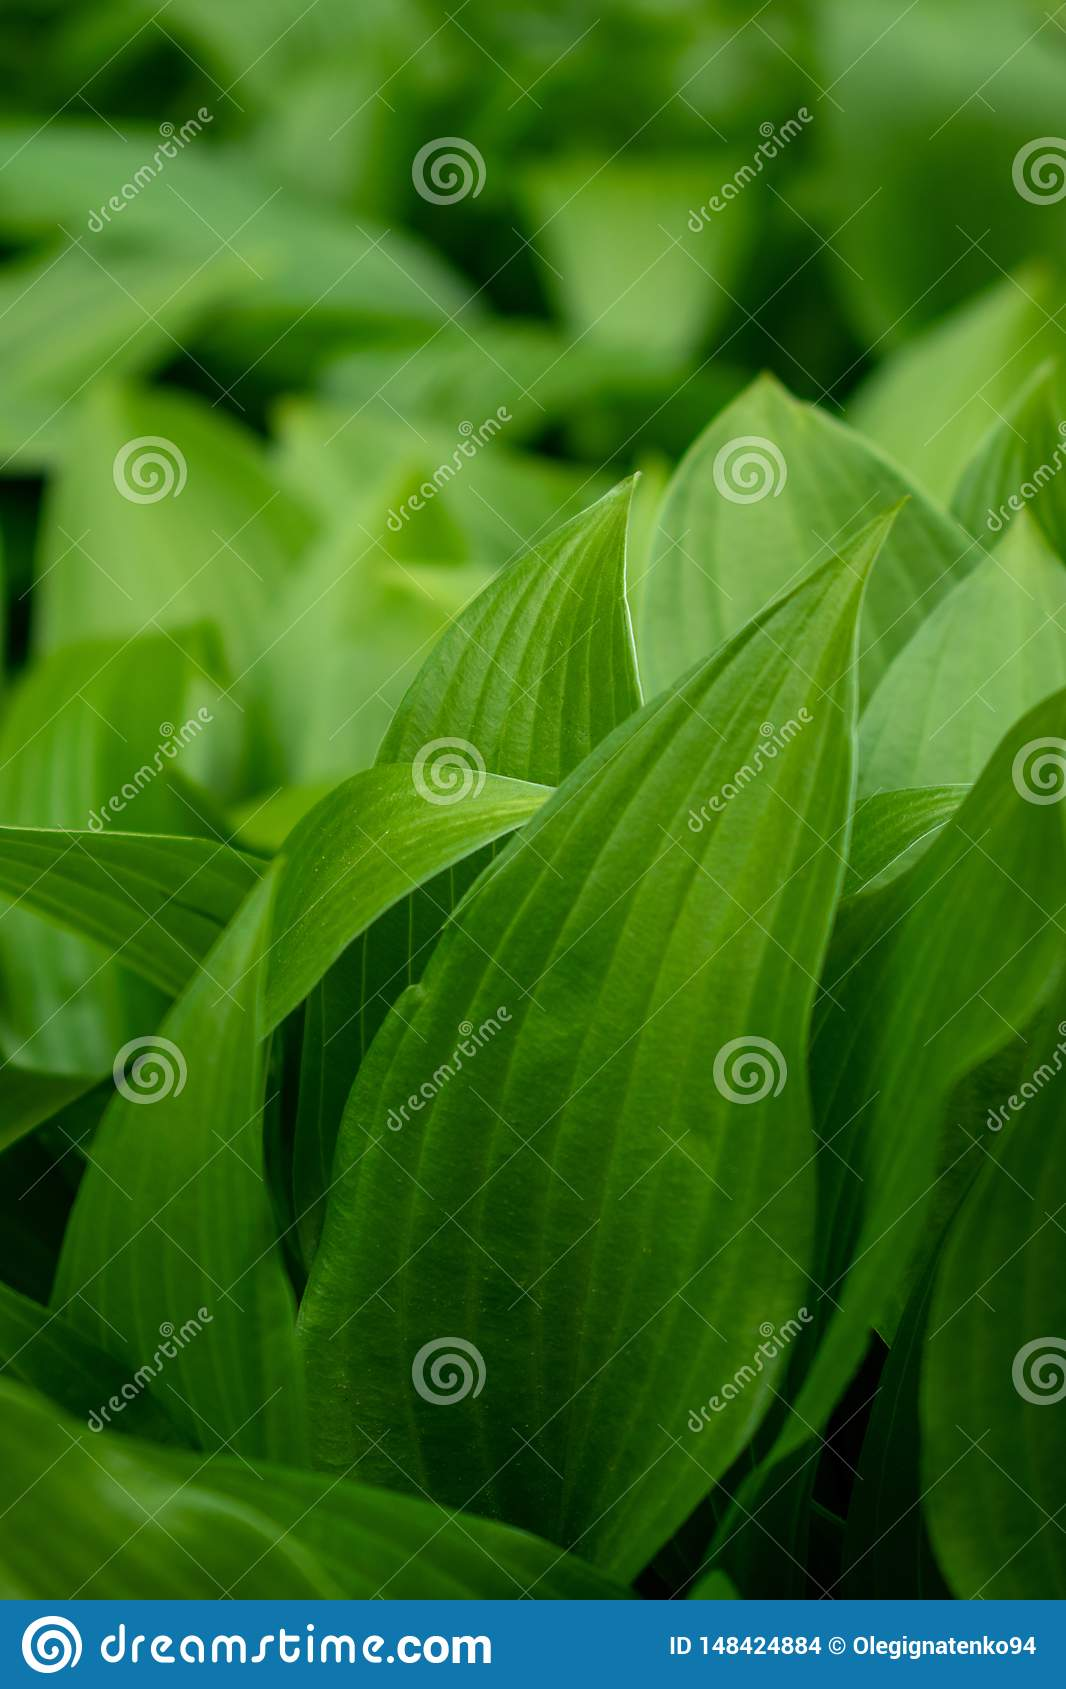 Background with green leaves and bokeh